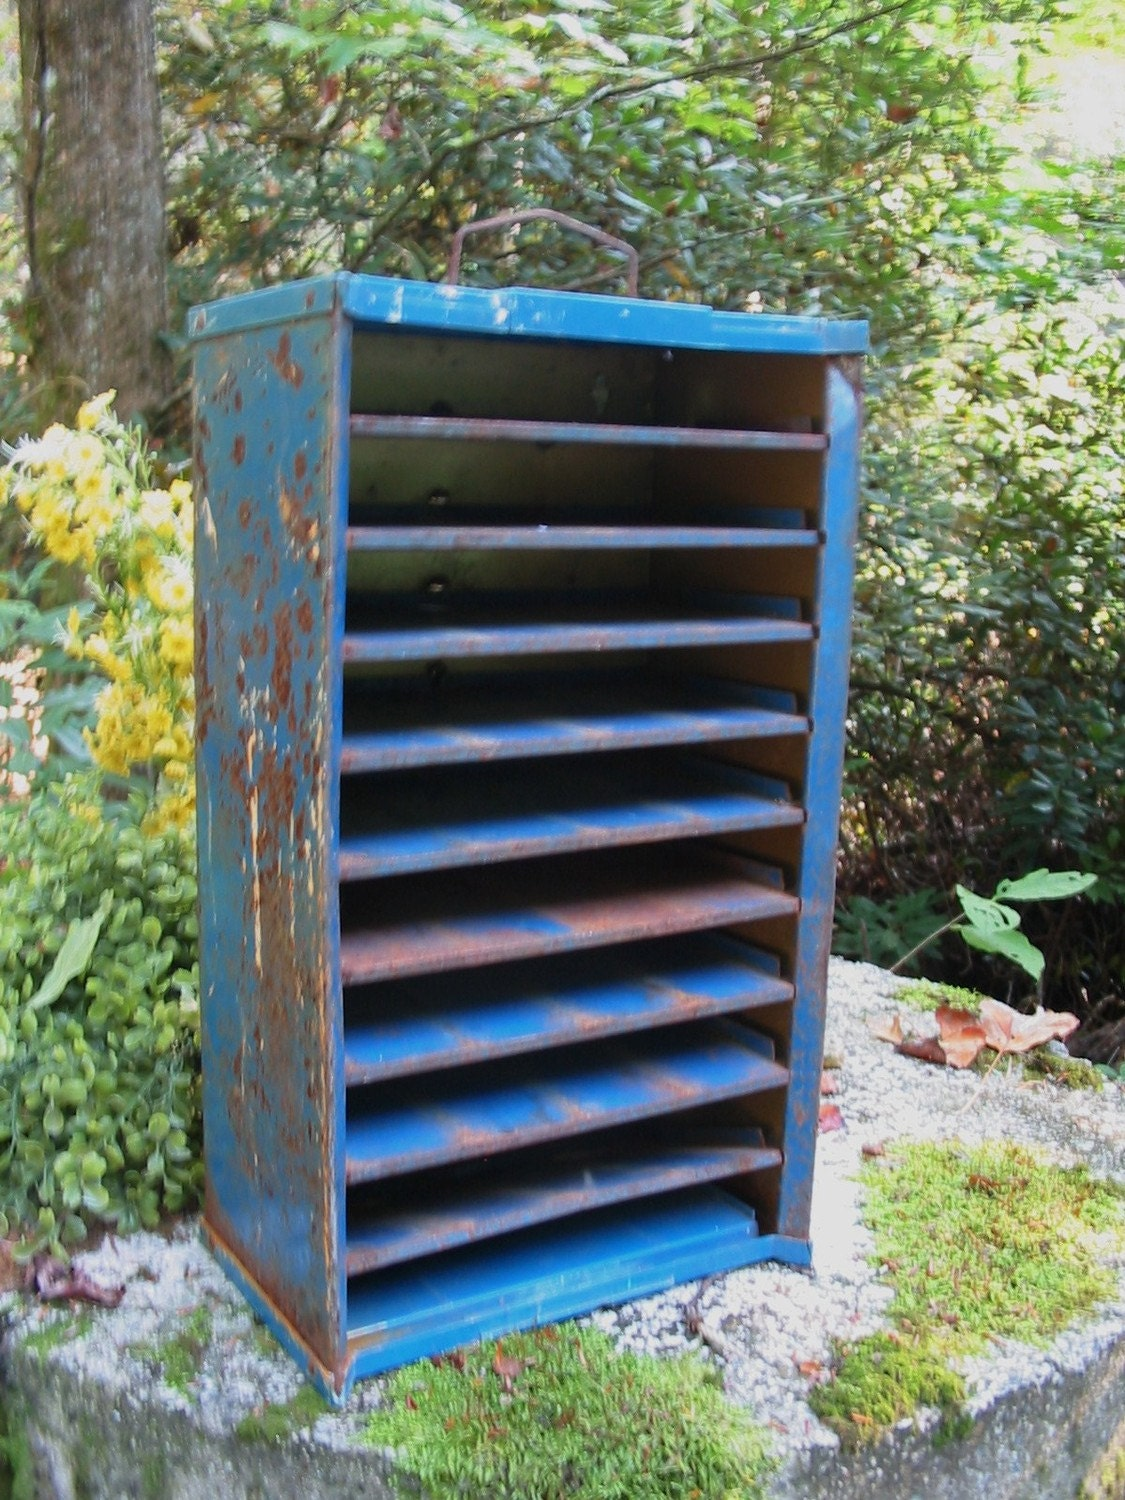 OLD Rusty BLUE Salvaged Metal Shelf Cubby for Display or Organizing your Junk